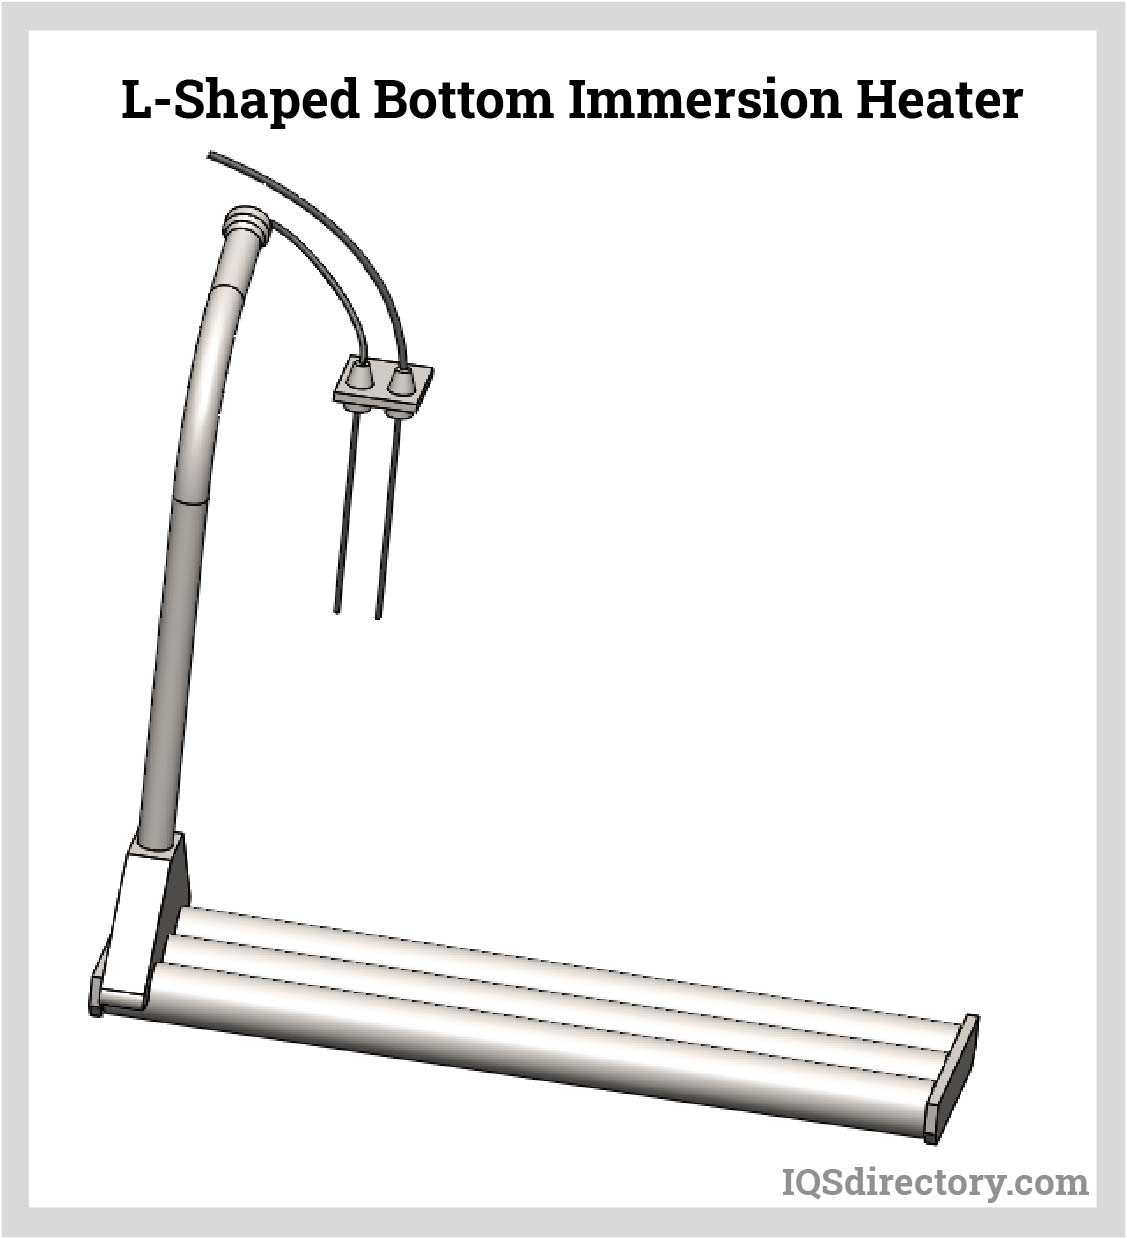 L-Shaped Bottom Immersion Heater